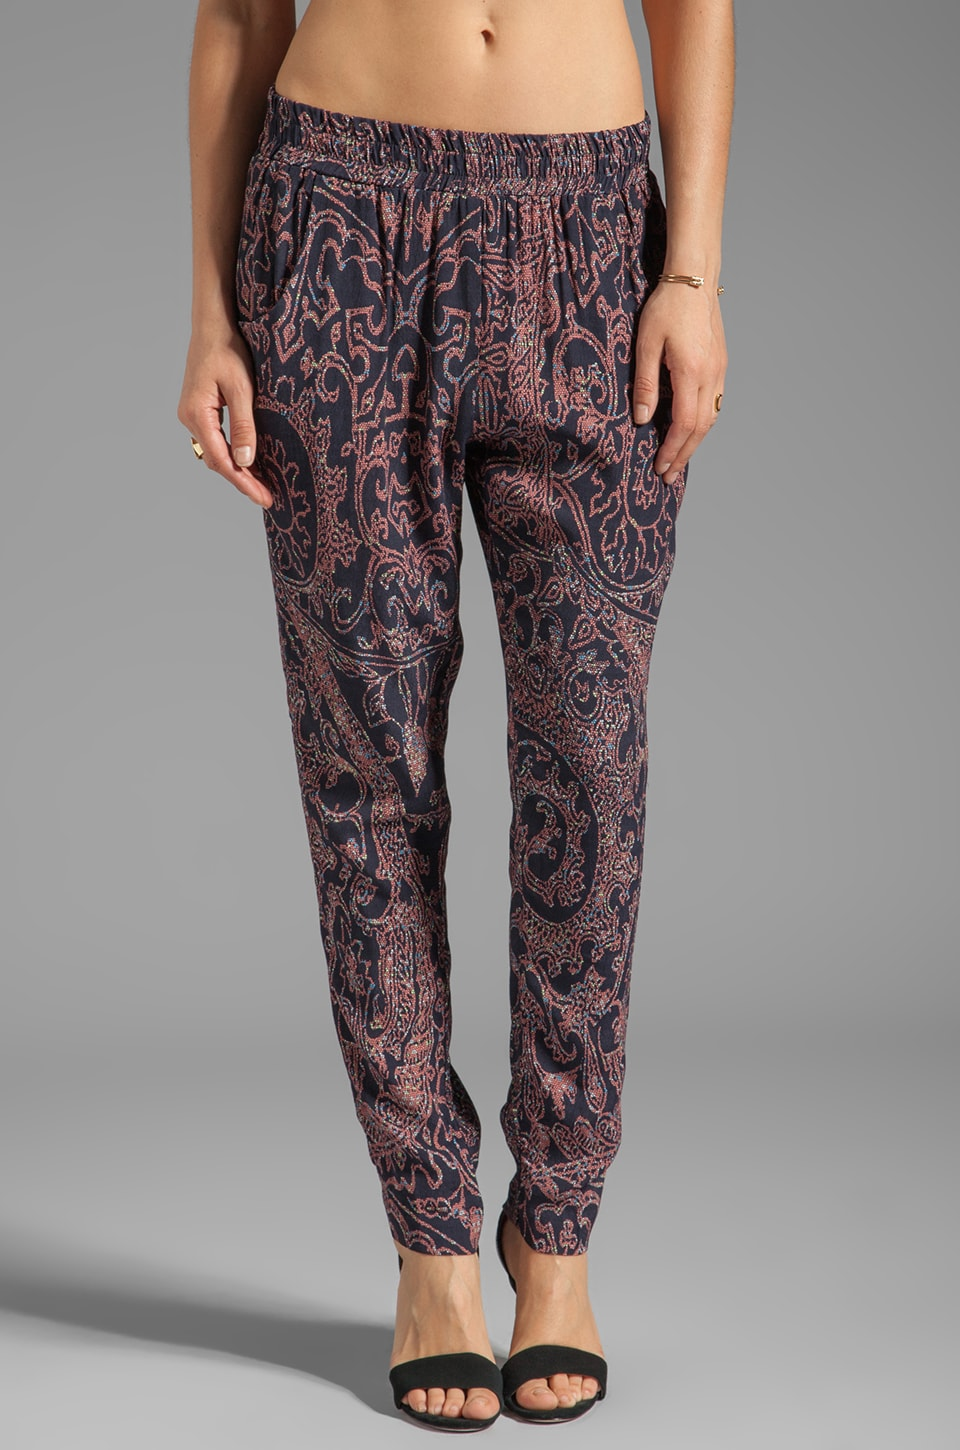 SAM&LAVI Junia Pants in Cathedral